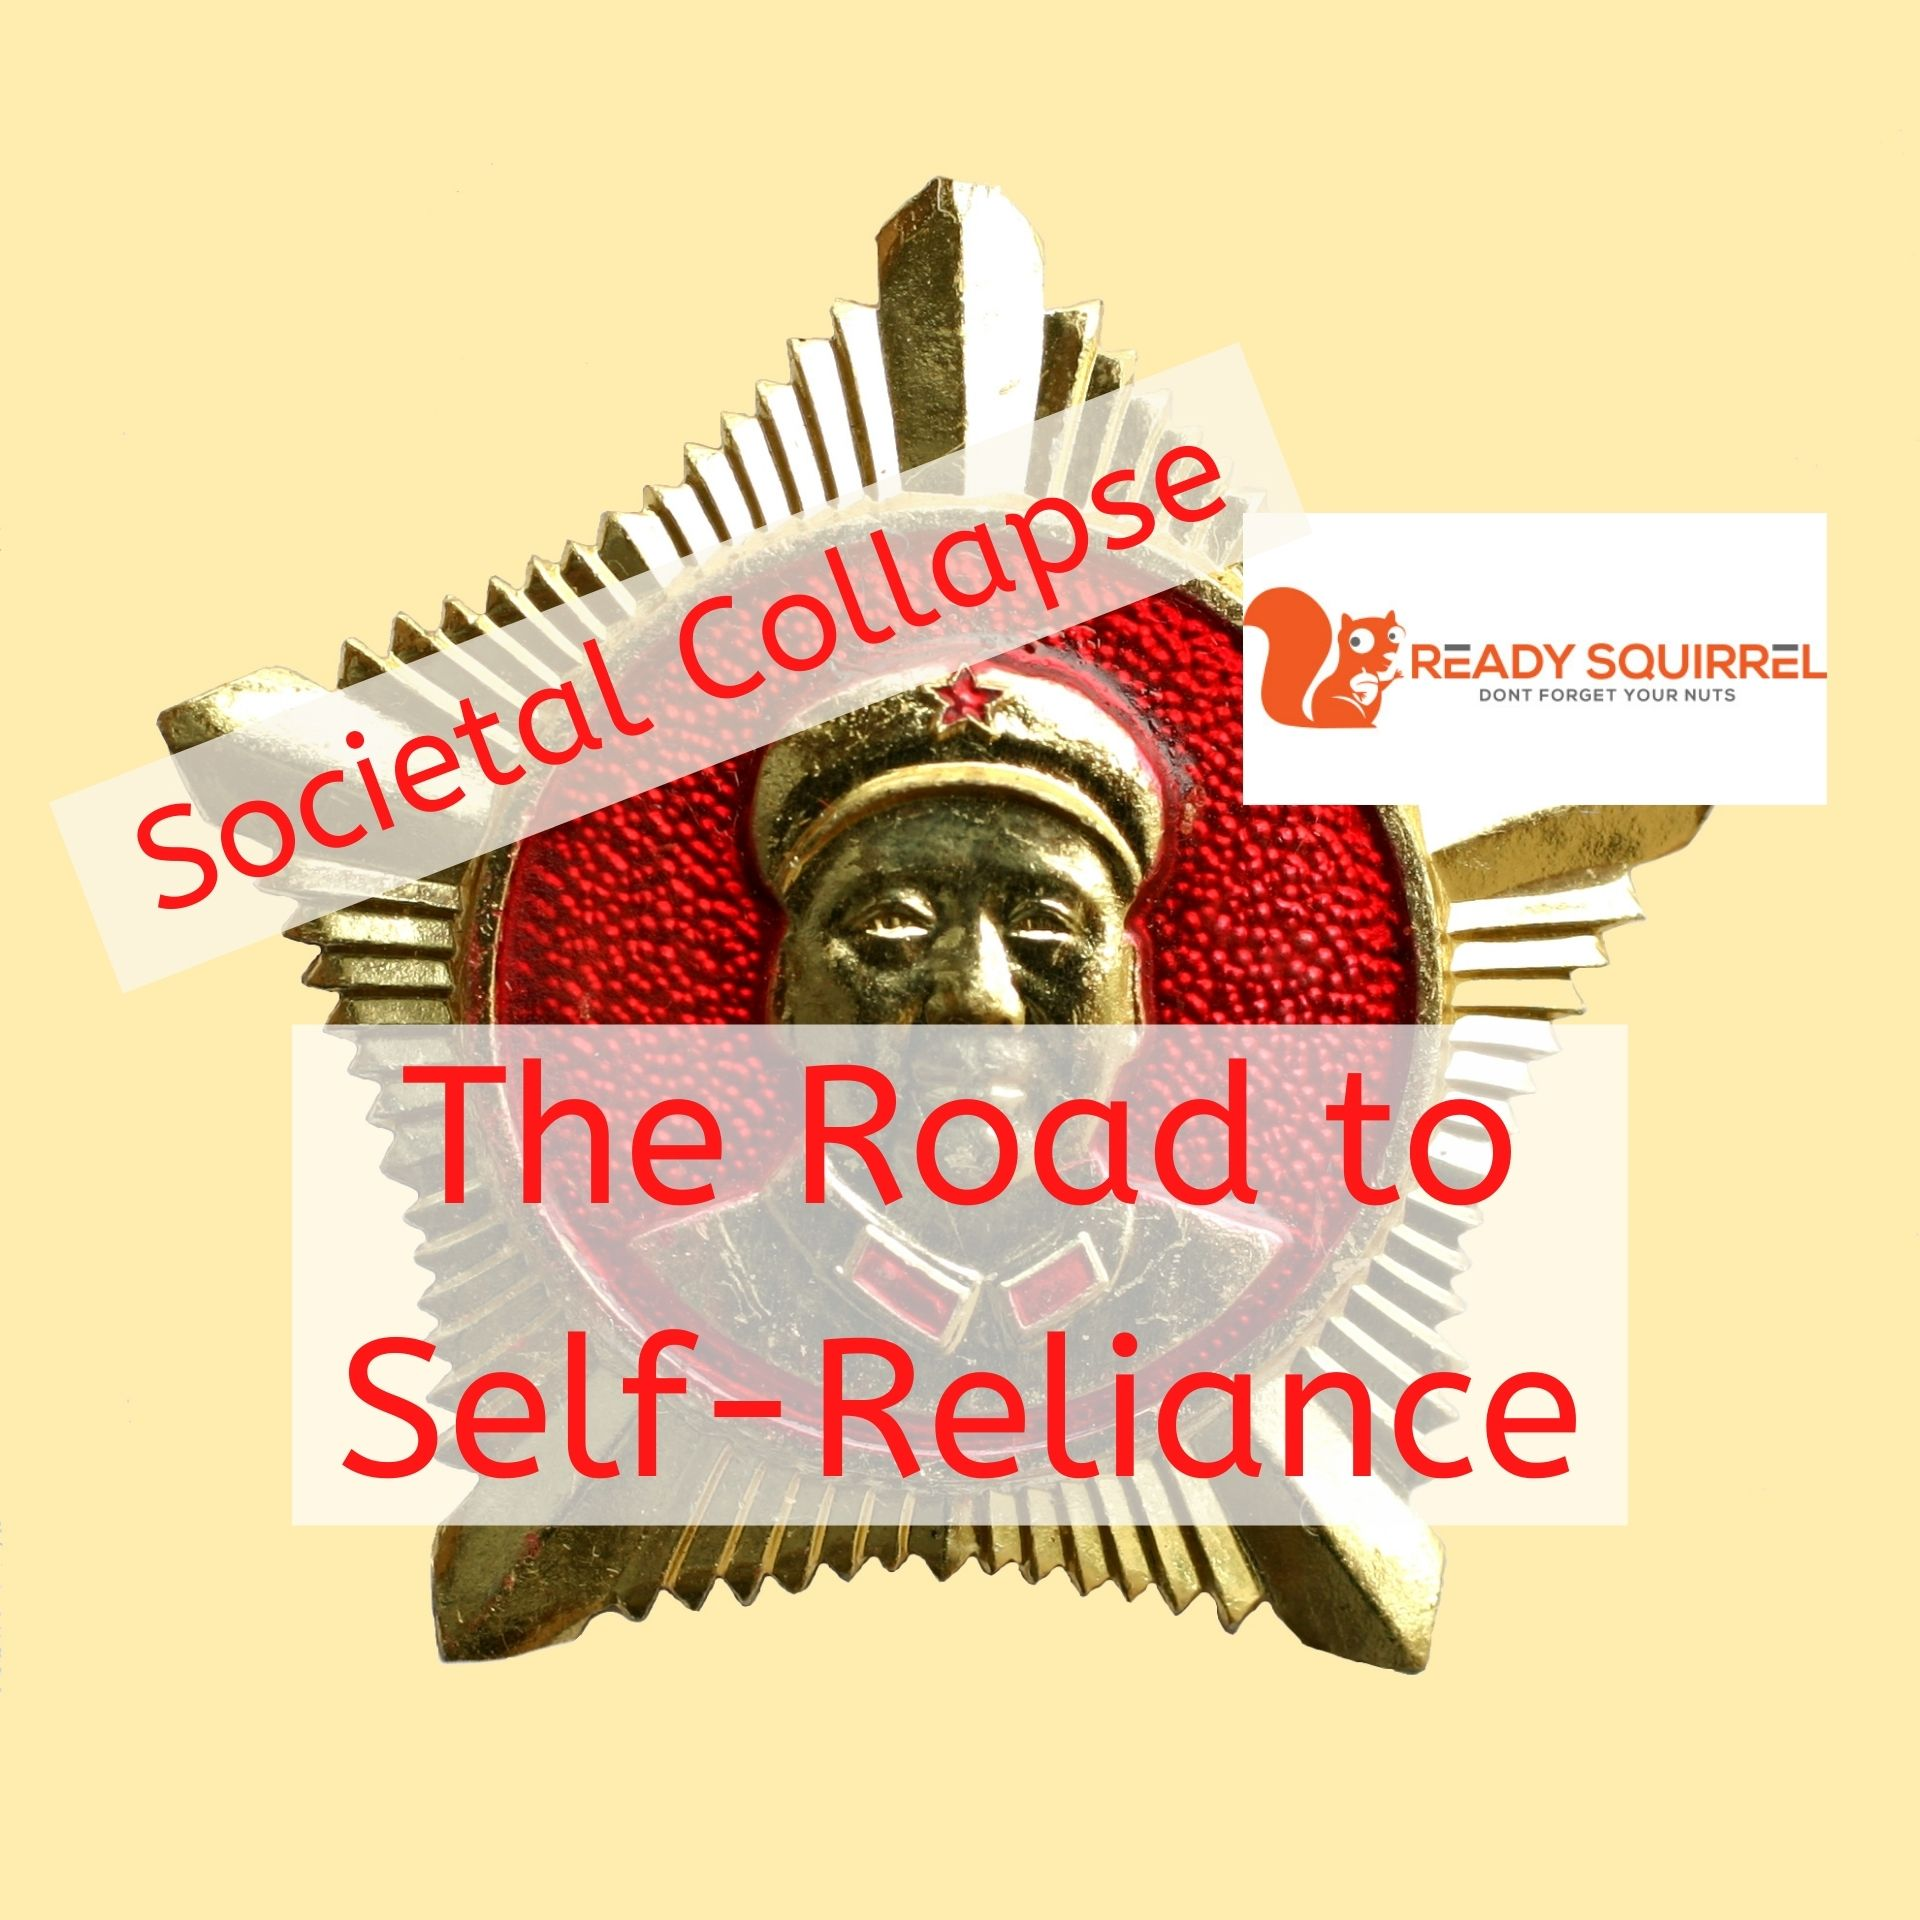 Societal Collapse: The Road to Self-Reliance